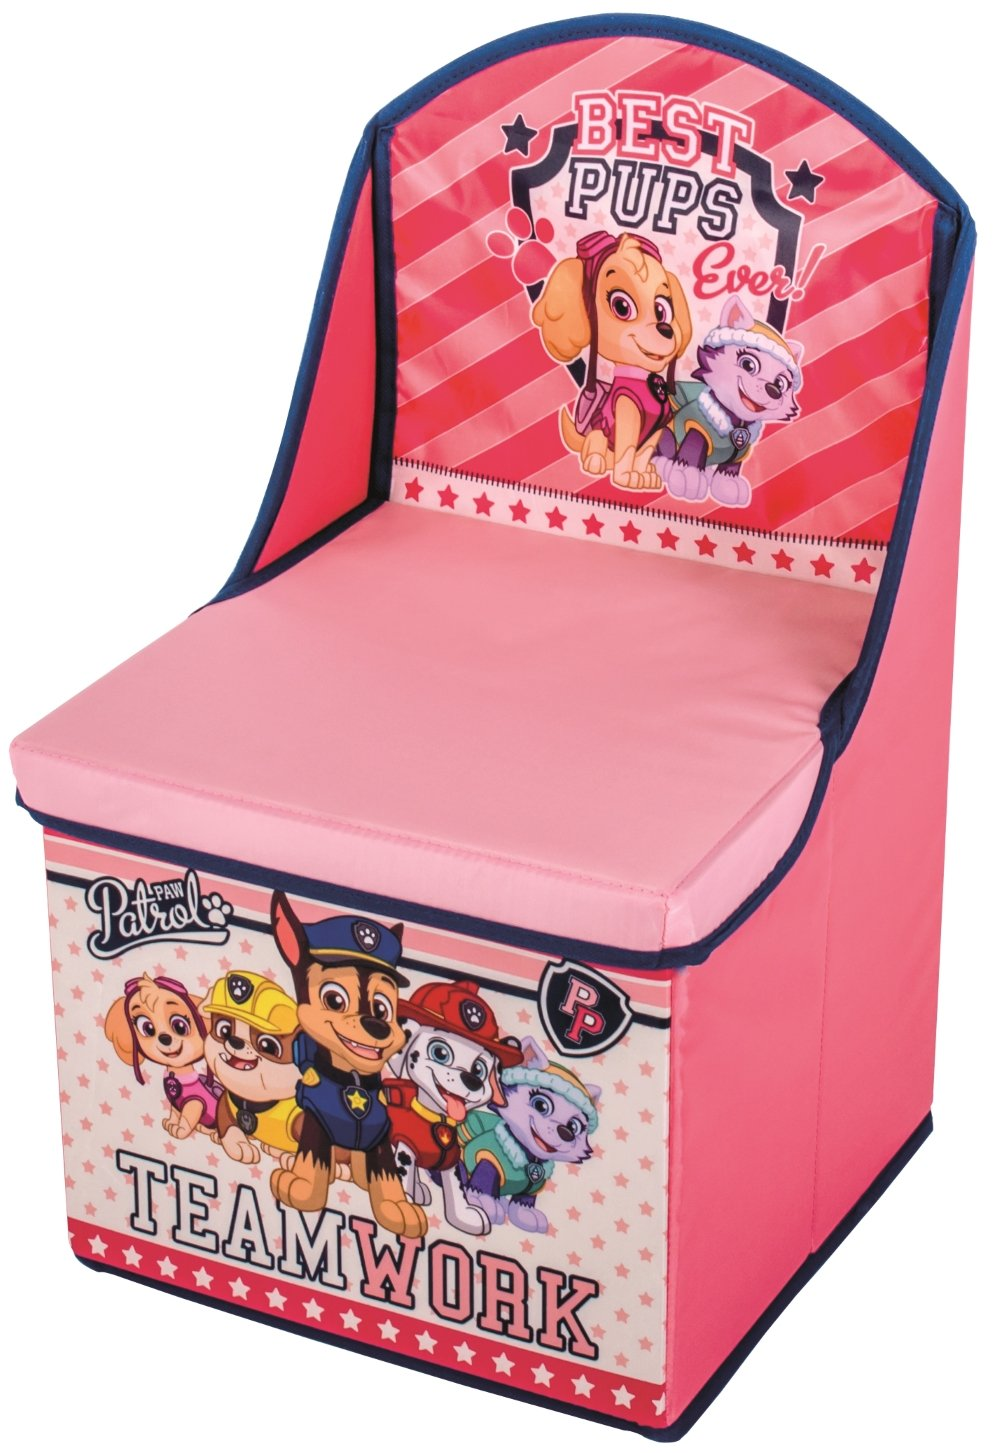 PINK Paw Patrol Kids Chair with Storage Girls Bedroom Furniture 88720